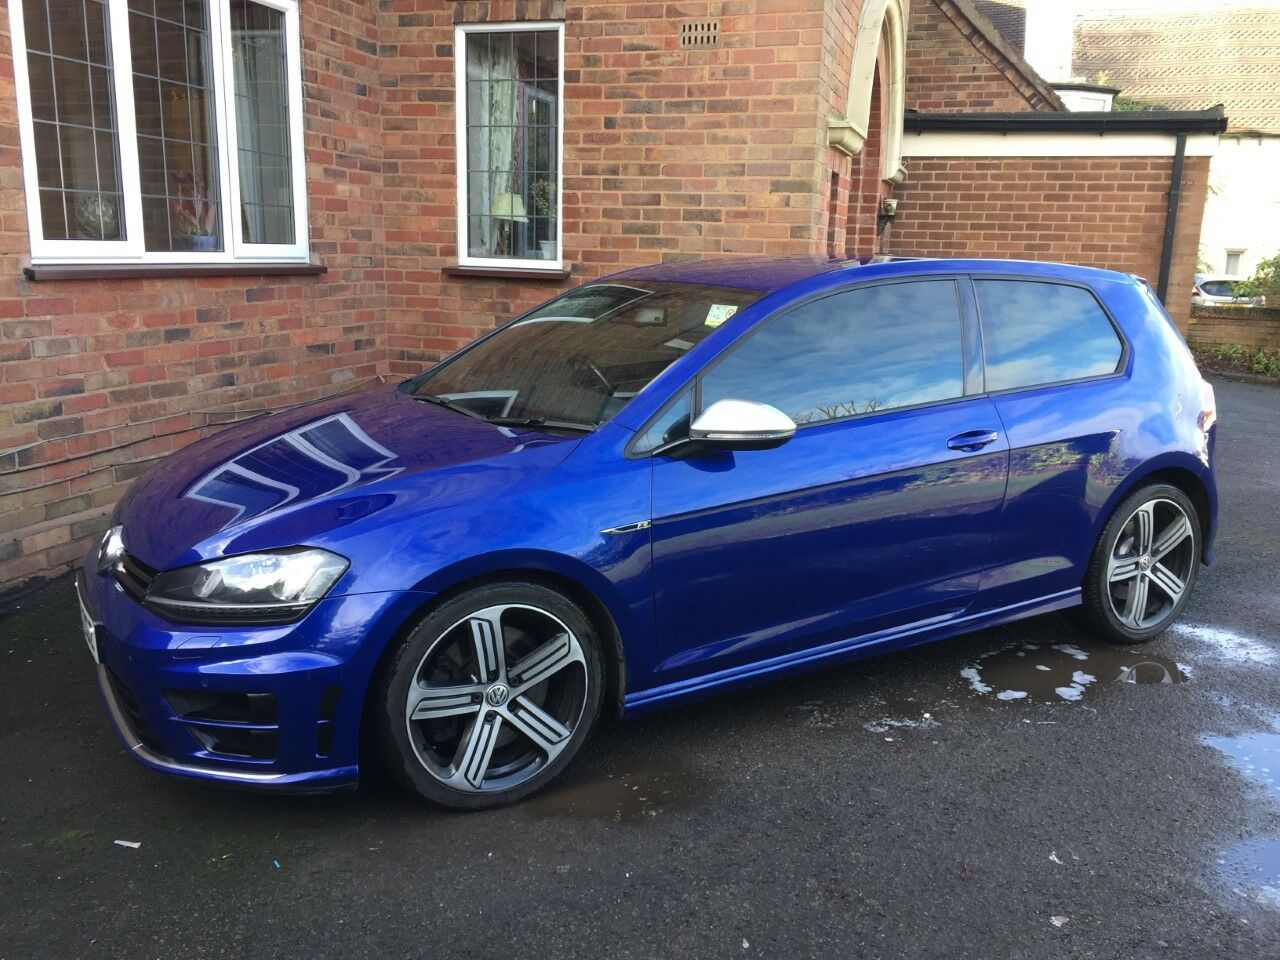 volkswagen golf r mk7 2015 hatchback dsg lapiz blue not audi s3 s4 type r gti 16. Black Bedroom Furniture Sets. Home Design Ideas